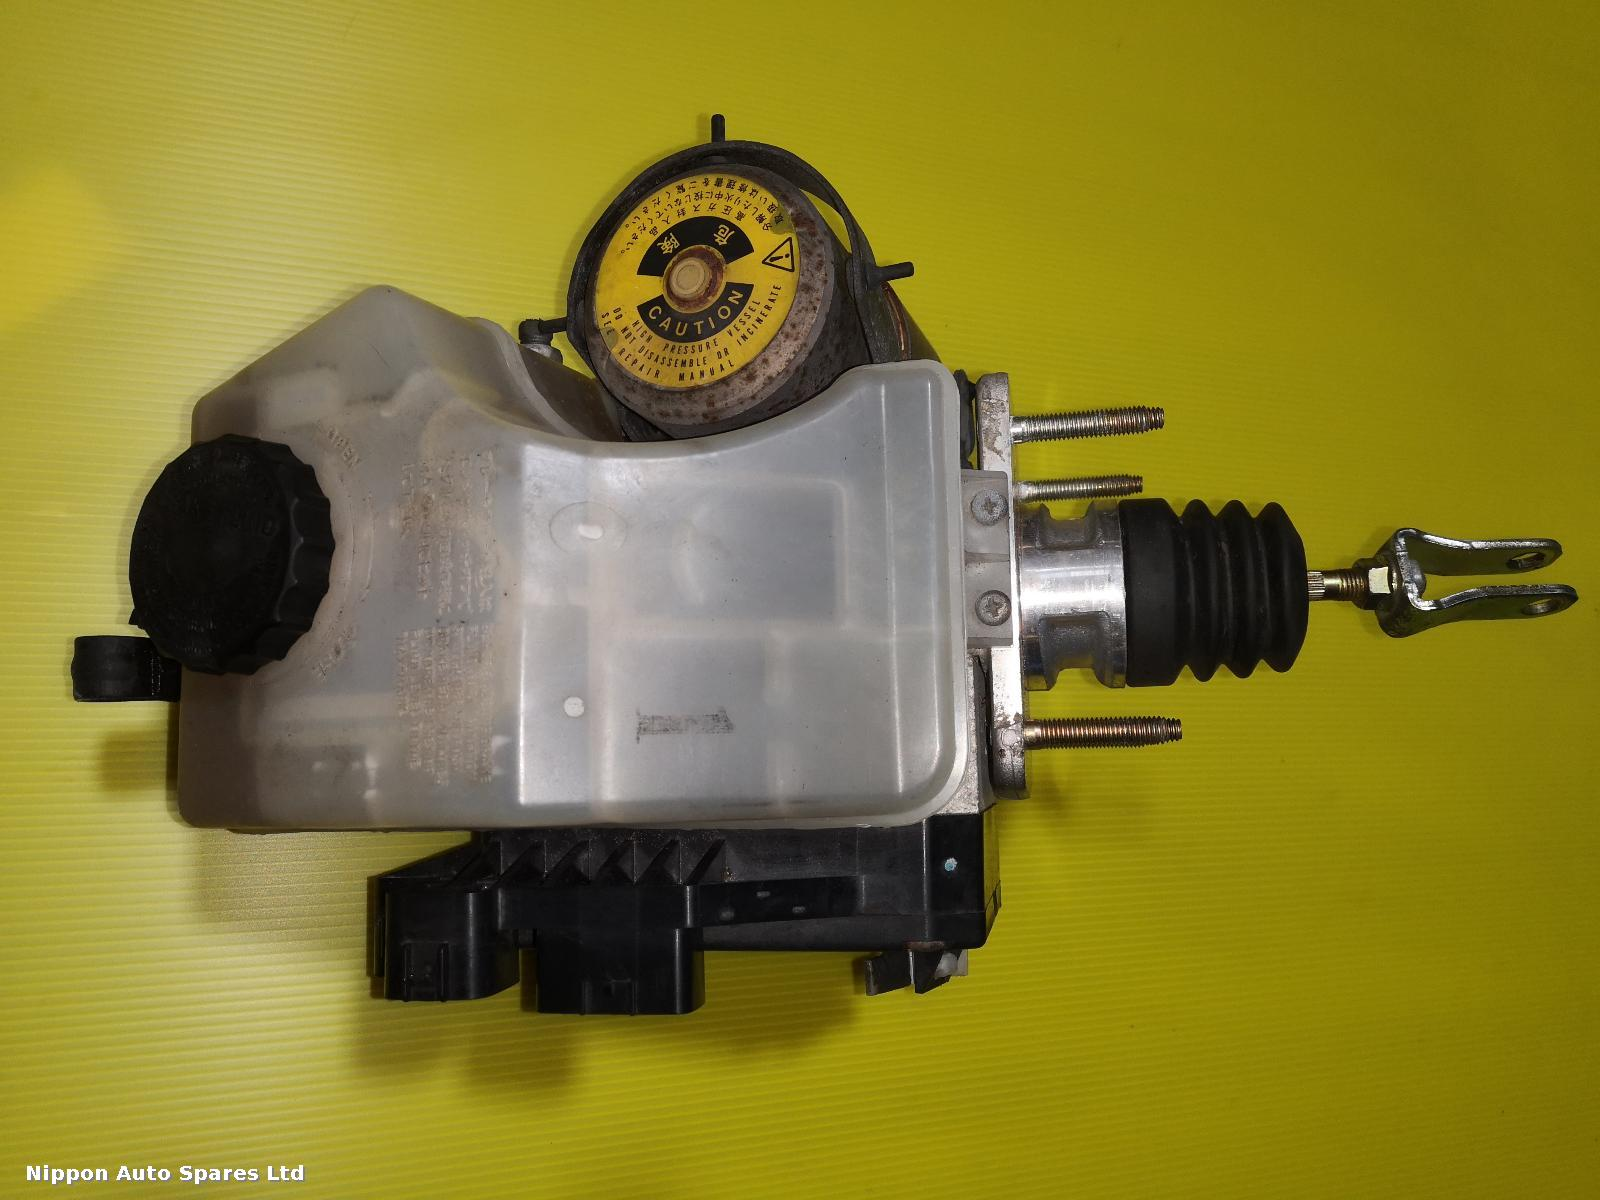 Lexus SC ABS Pump/Modulator : 56933